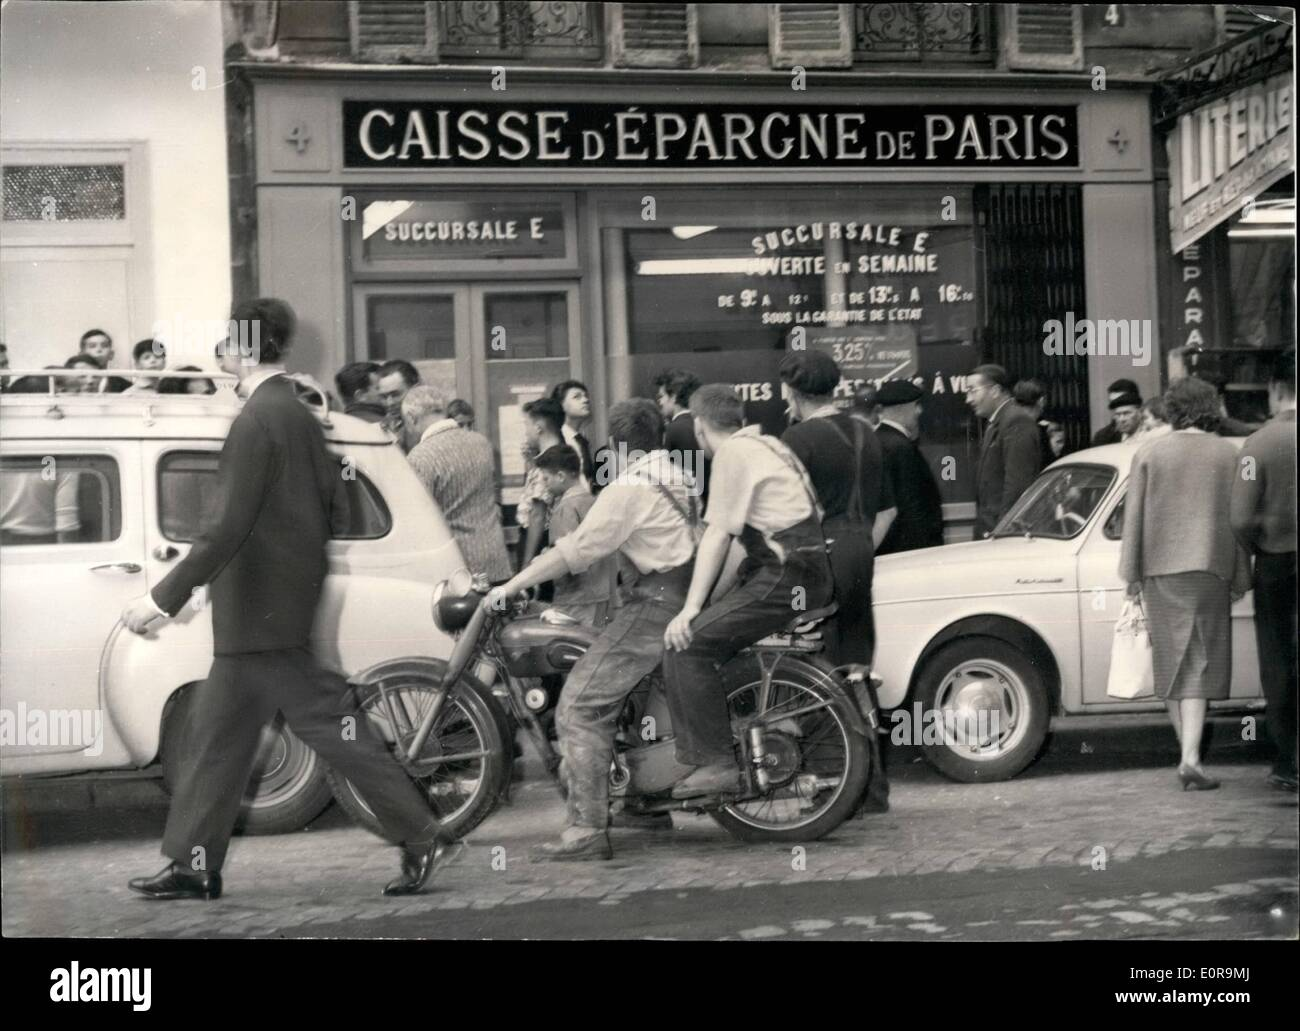 Sep. 09, 1958 - Daring Hold-Up In Broad Daylight: Paris Savings bank Robbed Of 2,500: Four men wearing dark glasses and Mackintoshes carried out a spectacular hold-up in a Paris saving banks, in the Rue Claude Bernard, not far from Sorbonne University this morning after locking up the bank teller and the rest of the staff in a room the grabbed 2,500 worth of bank notes and quietly left the bank before the staff had the time to call the police. Crowd before the bank after the robbery, - Stock Image